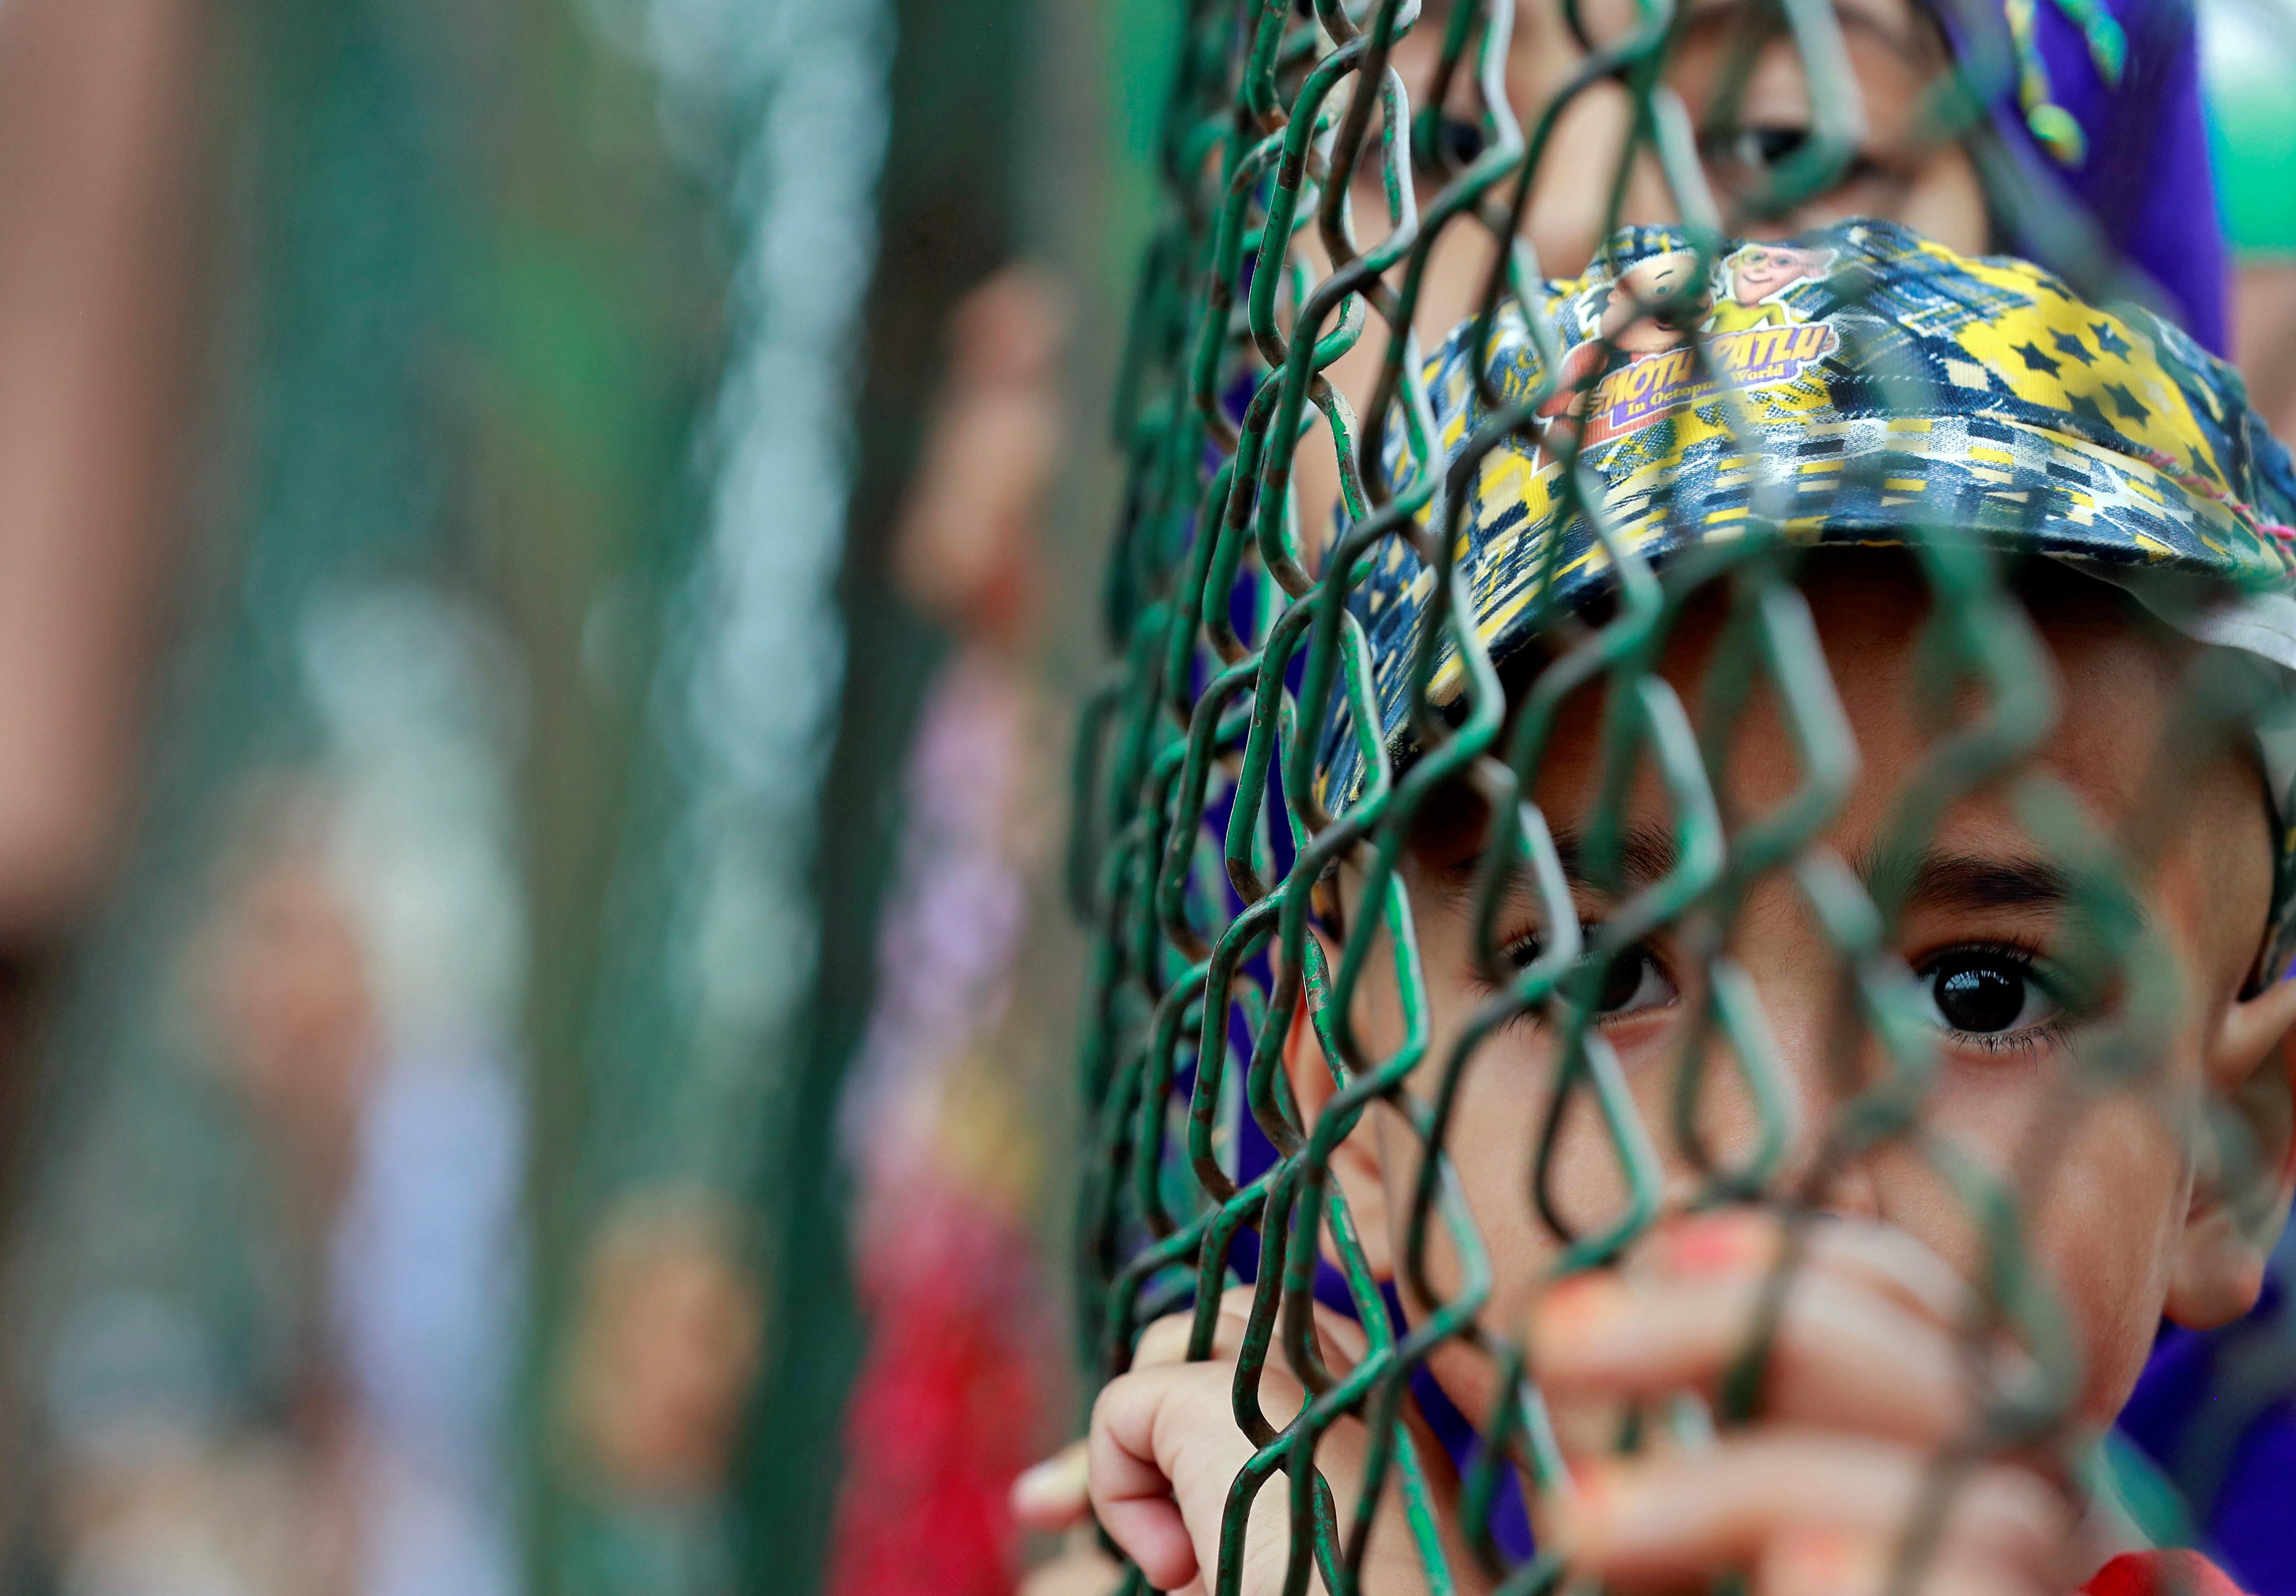 Schools, telephone lines to reopen in Kashmir after lockdown